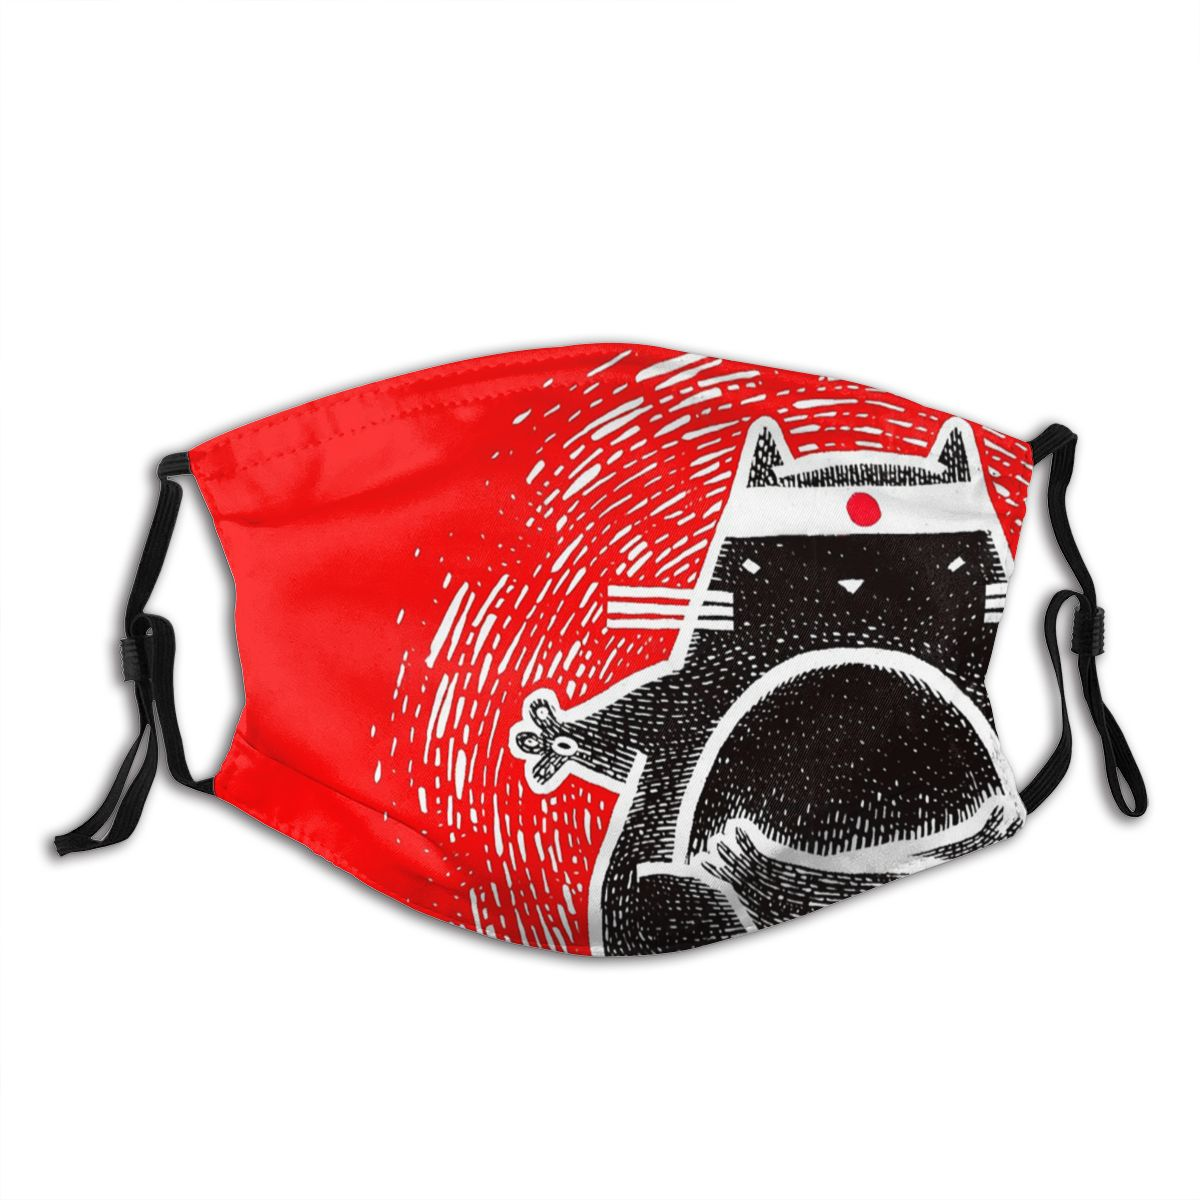 Funny And Cute Fatty Japanese Cat Praticing Yoga Non Disposable Trendy Mouth Face Mask Anti Haze Dustproof with Filters Winter